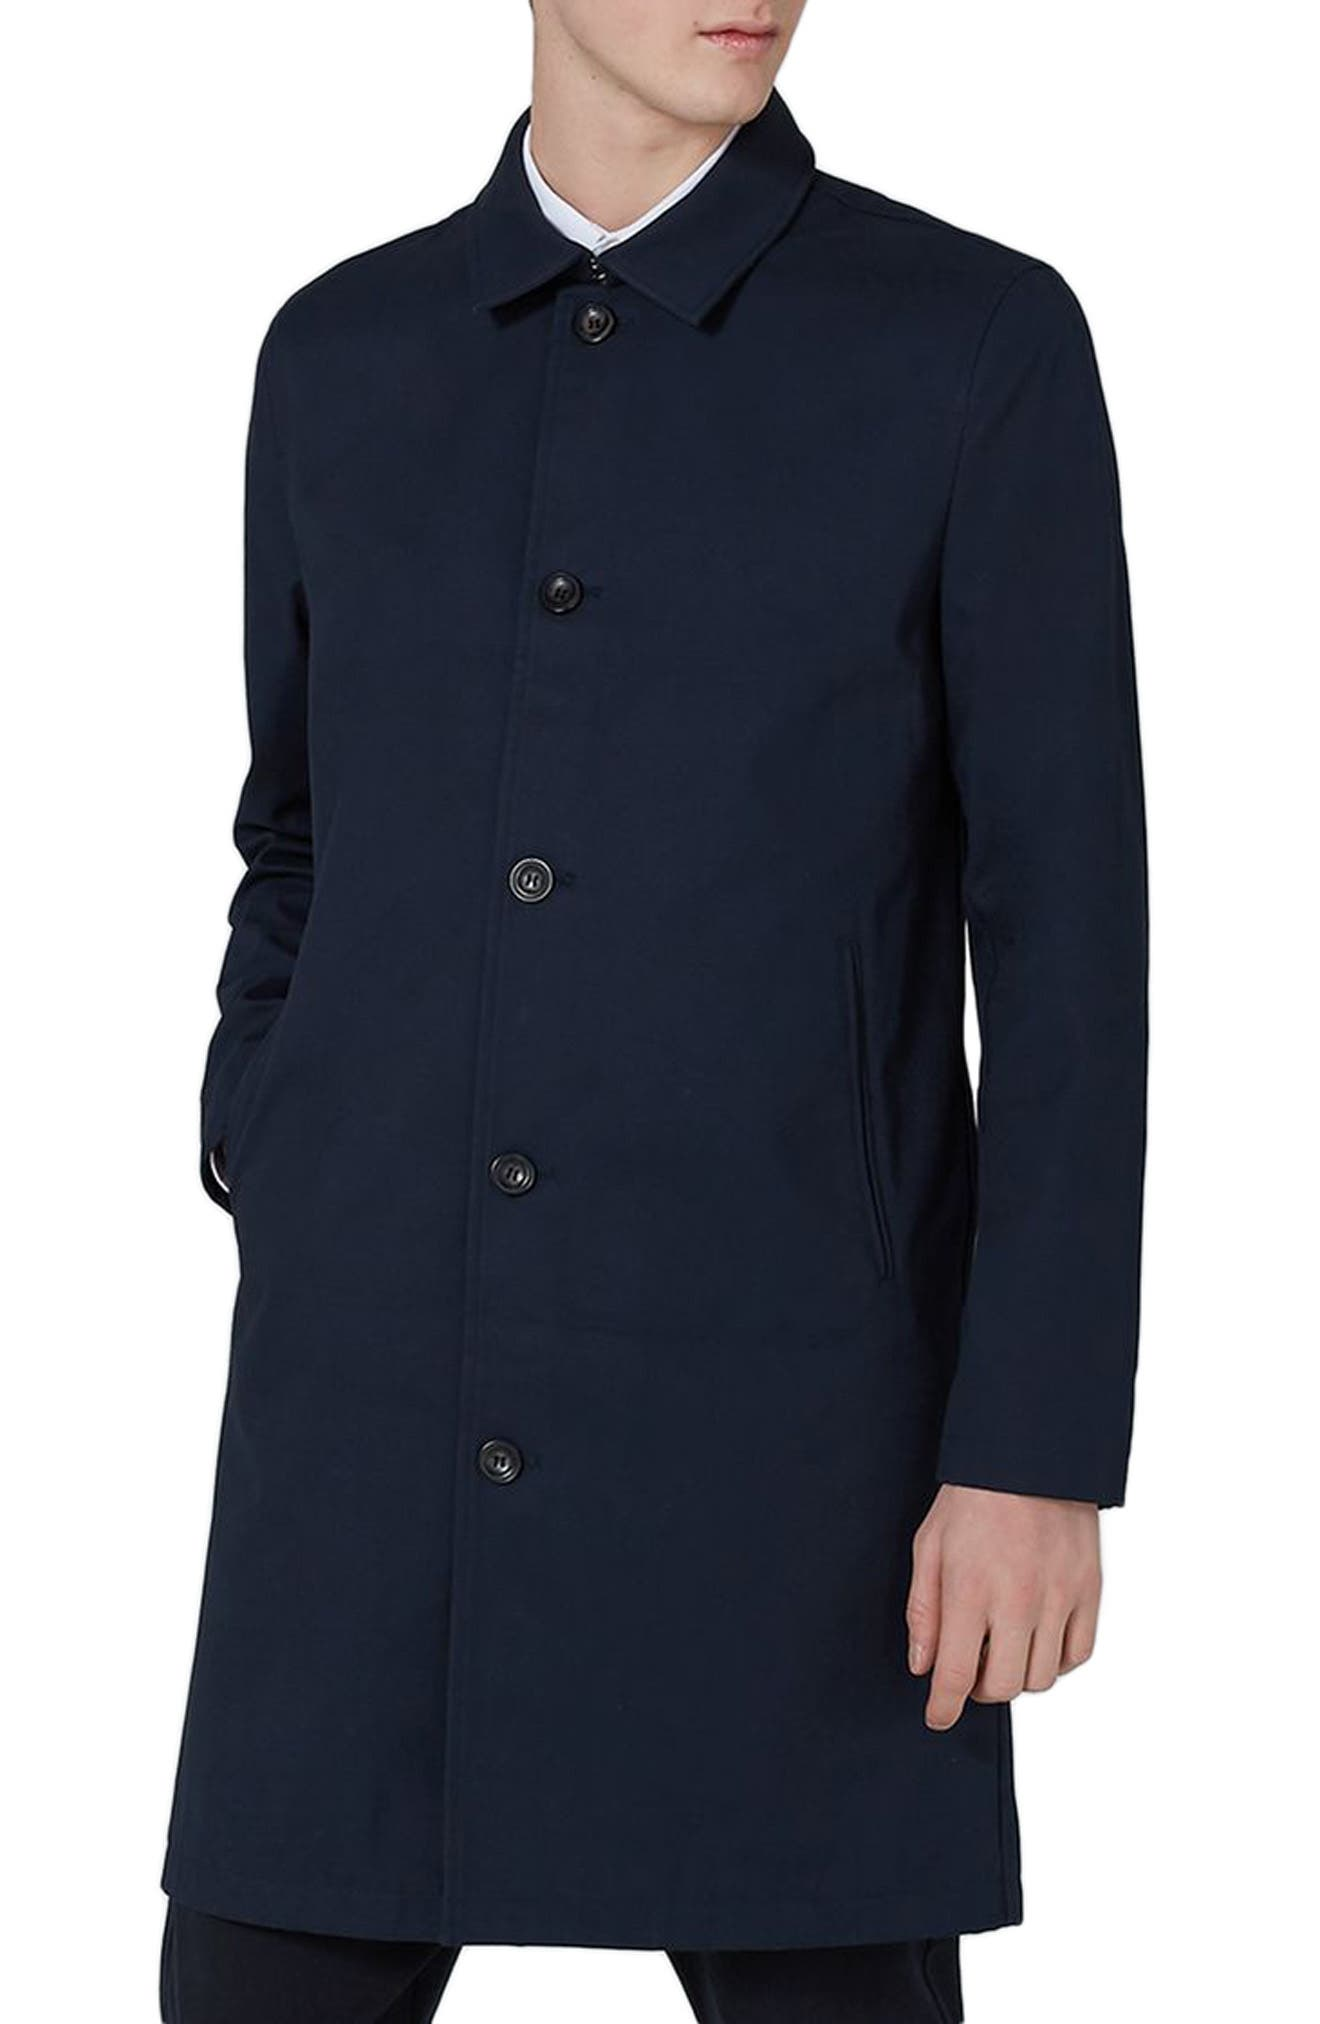 Outlet Factory Outlet Sale Cheapest Price Topman Single Breasted Topcoat Free Shipping Best Wholesale cTYBtt7r0